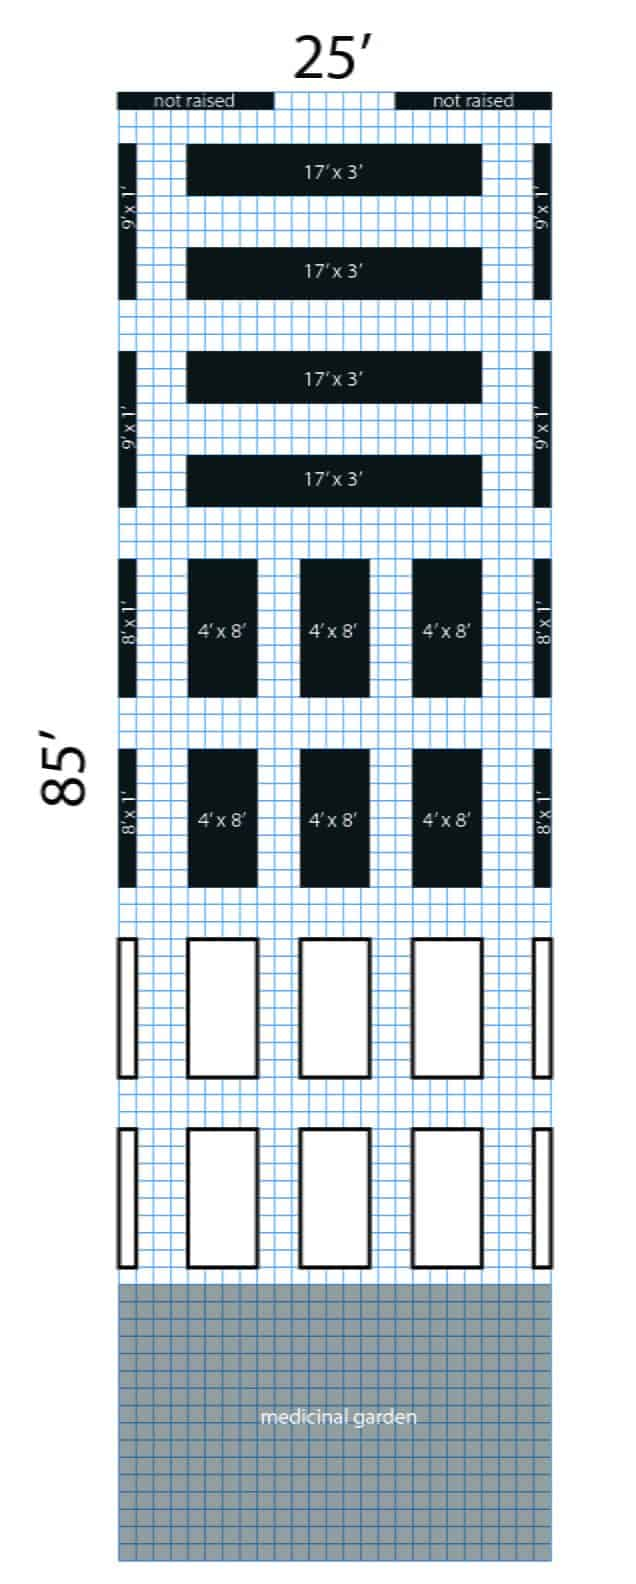 A black and white grid showing a garden layout plan.